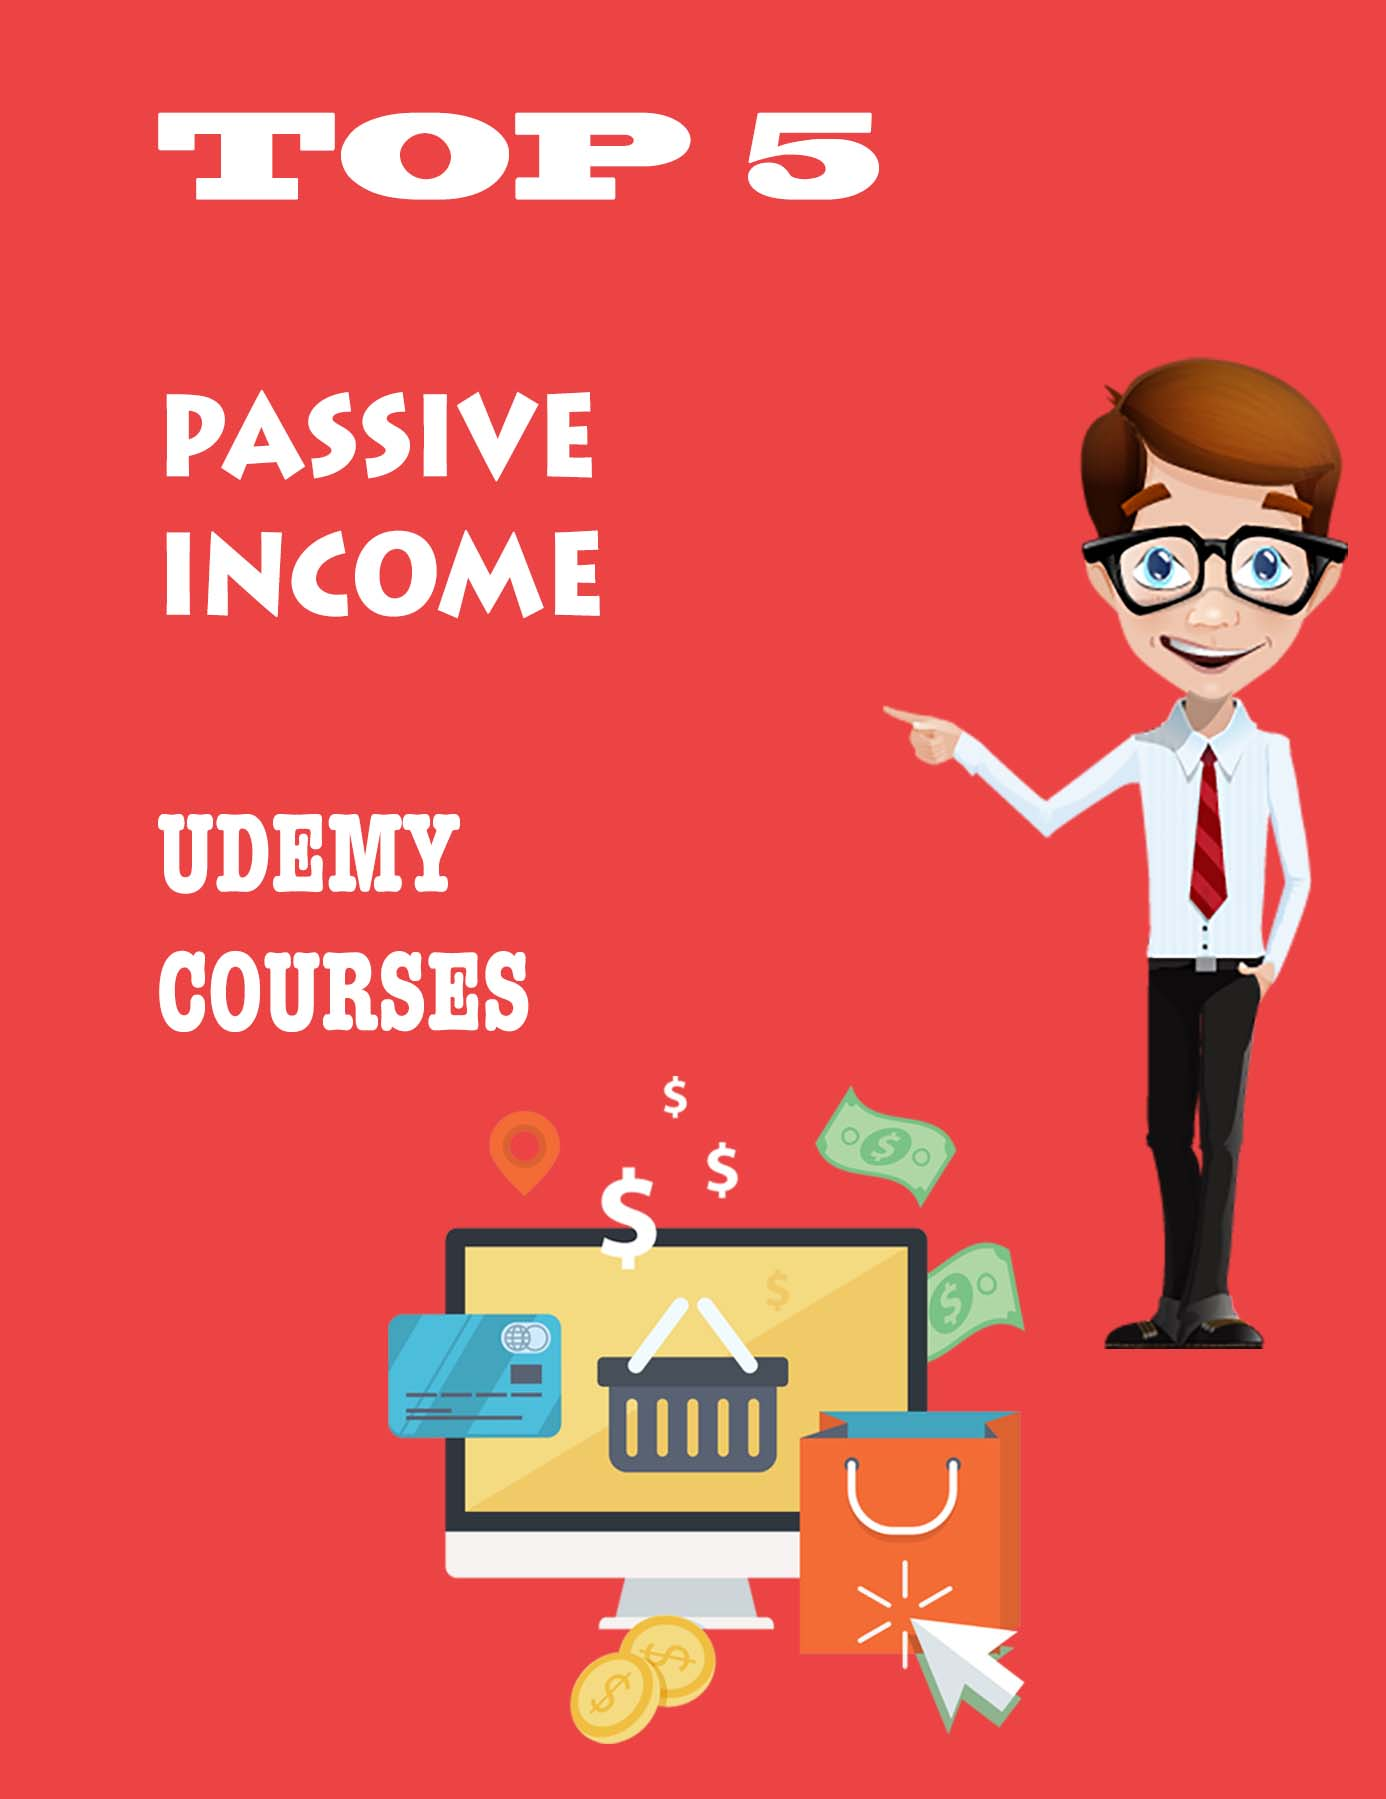 udemy top passive income courses